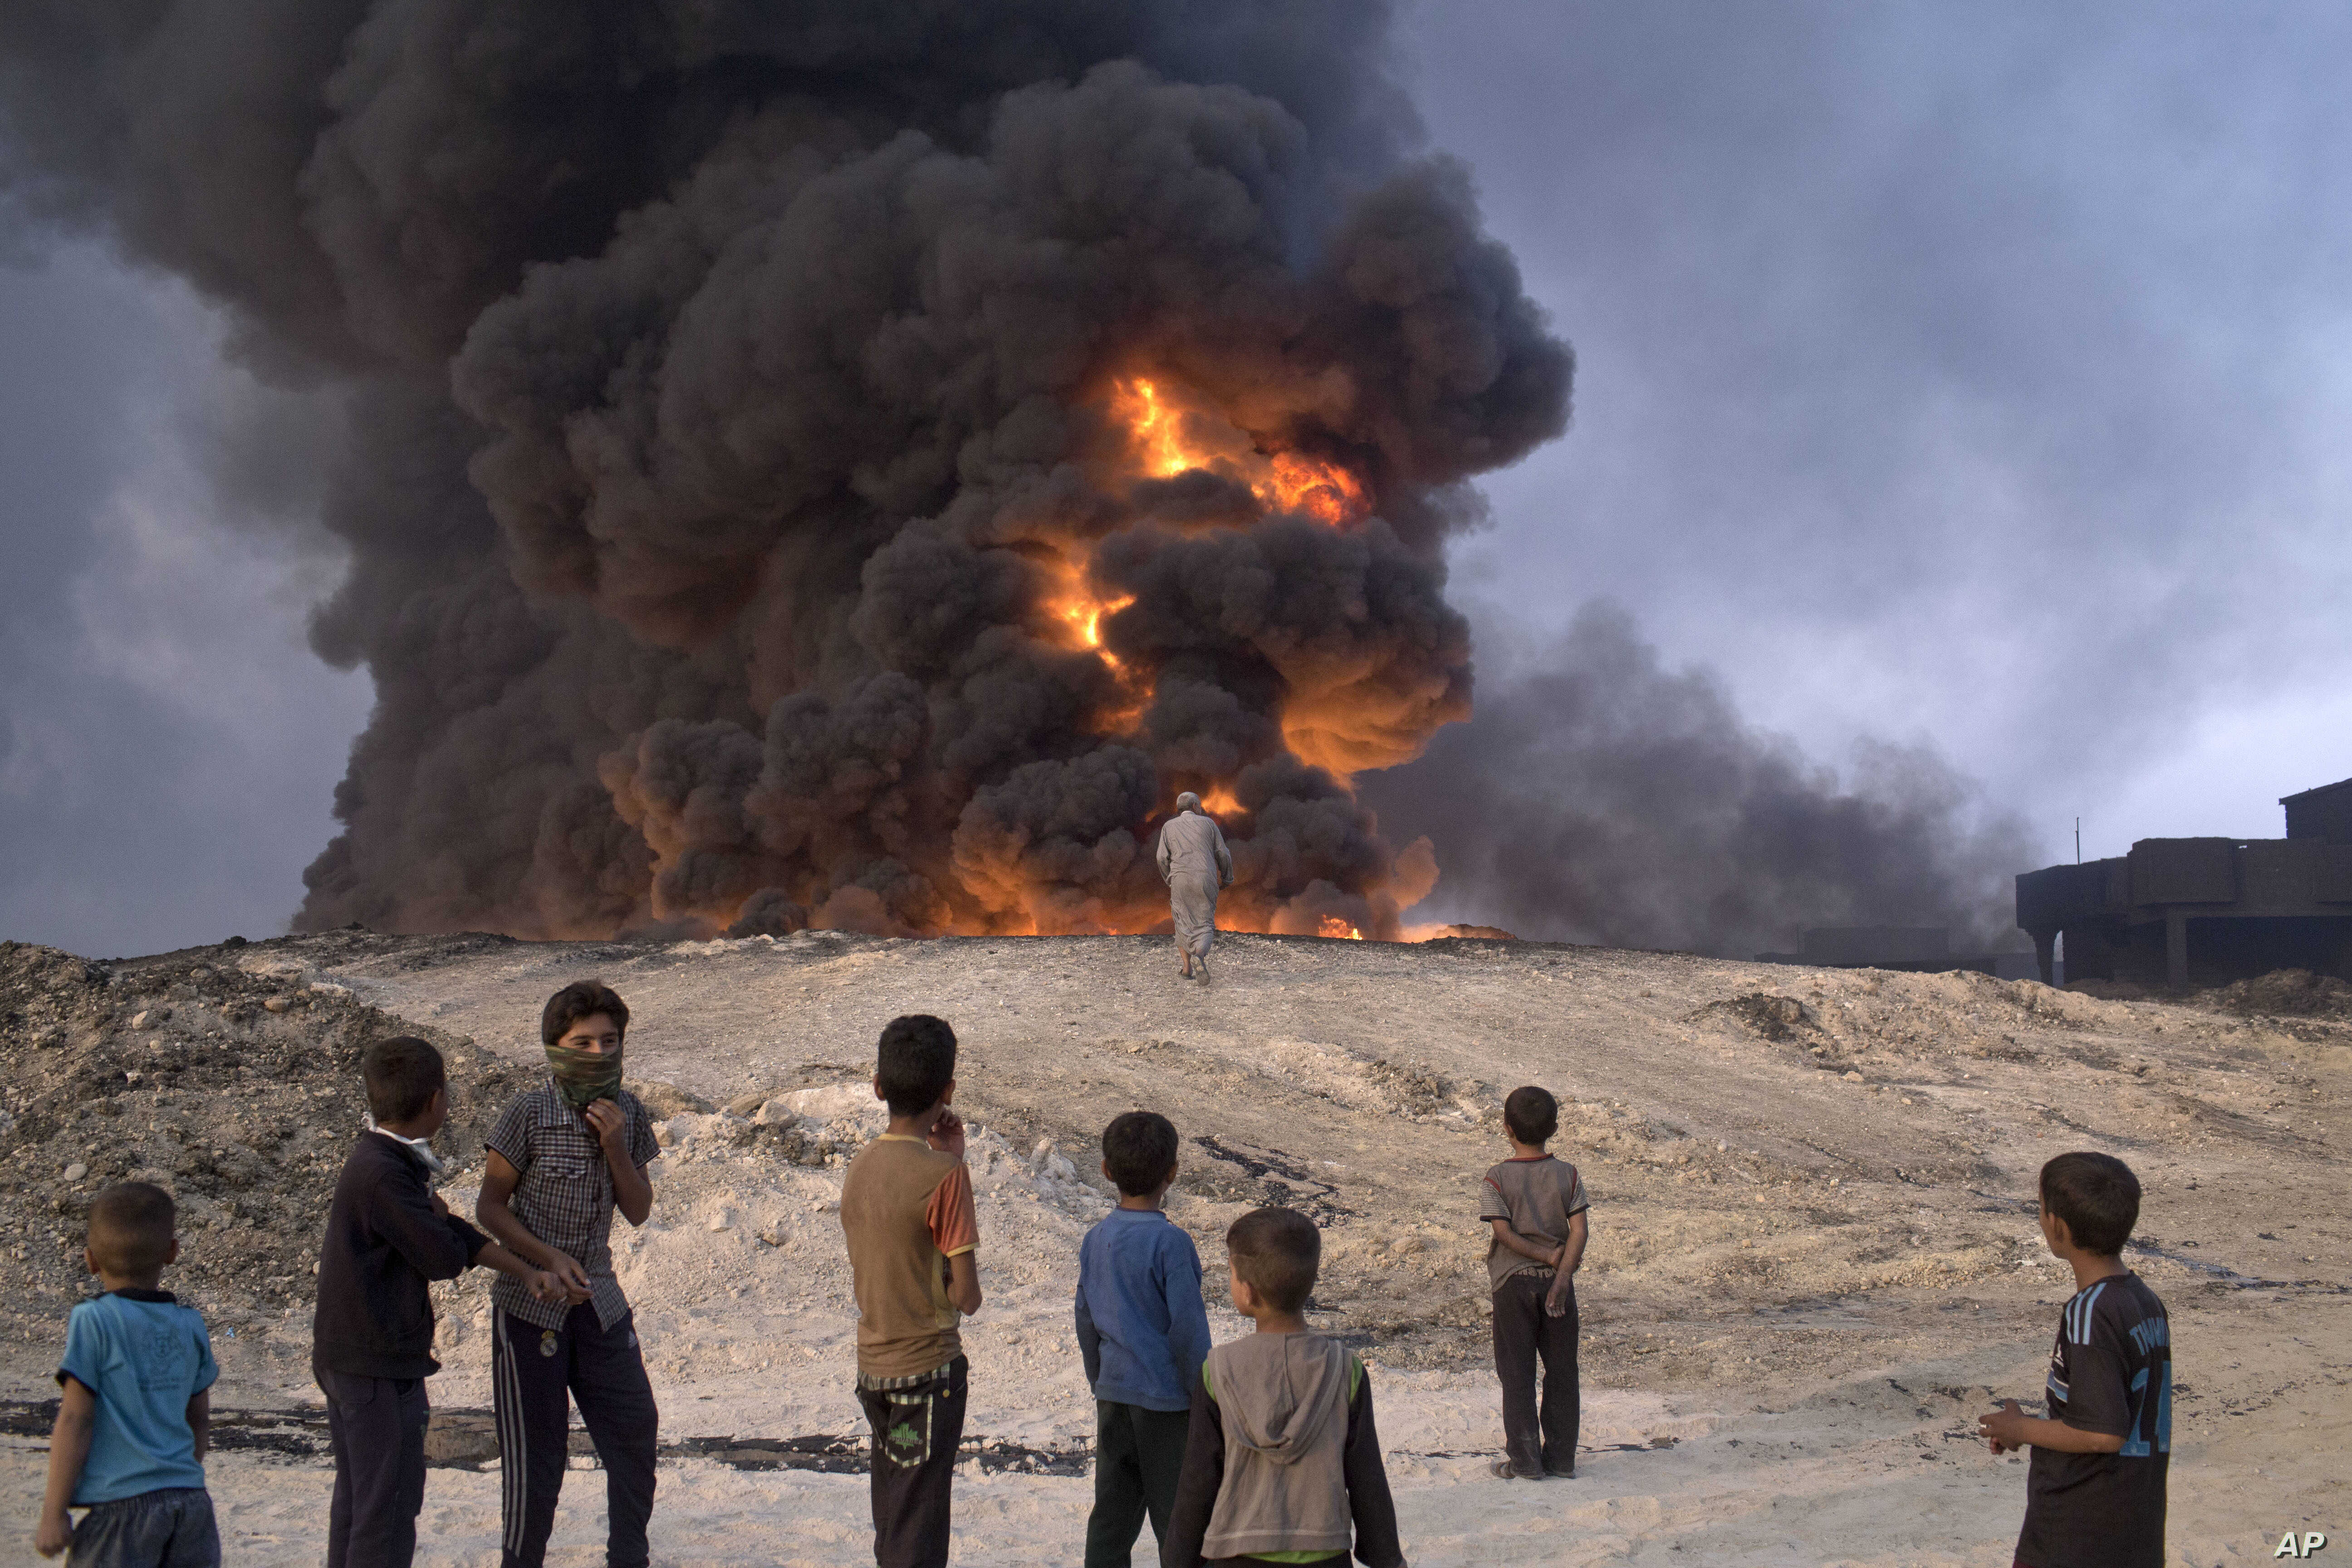 Islamic State fighters torched a sulfur plant in Qayyarah, about 31 miles (50 km) south of Mosul, Iraq, sending a cloud of toxic fumes into the air that mingled with oil wells the militants had lit on fire to create a smoke screen.